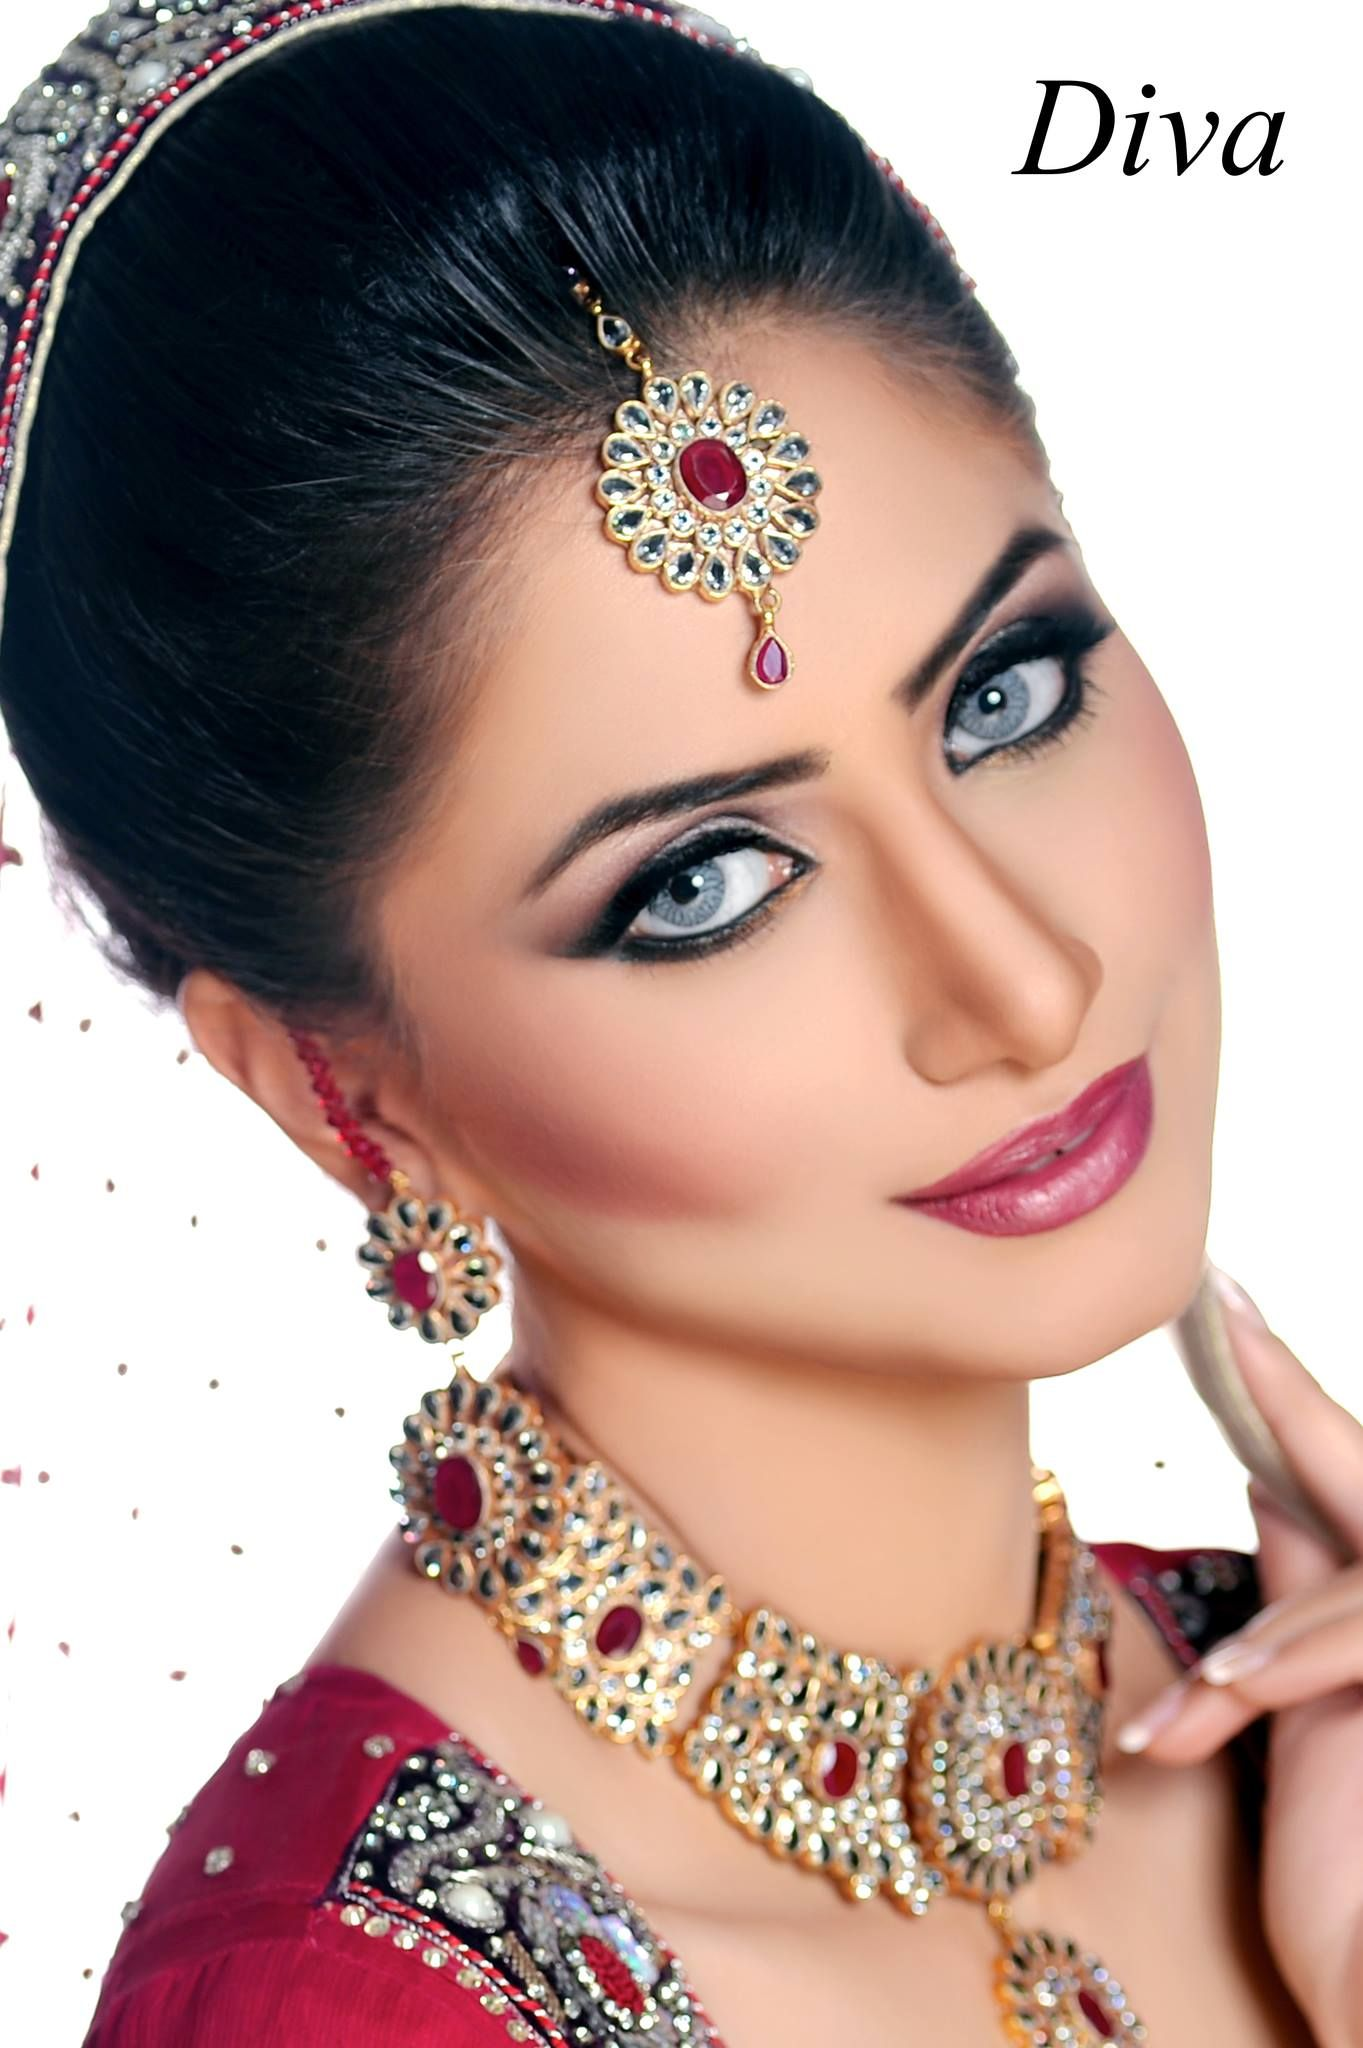 Bridal Makeup Salon Makeup By Diva Beauty Salon Model Bridal Makeup